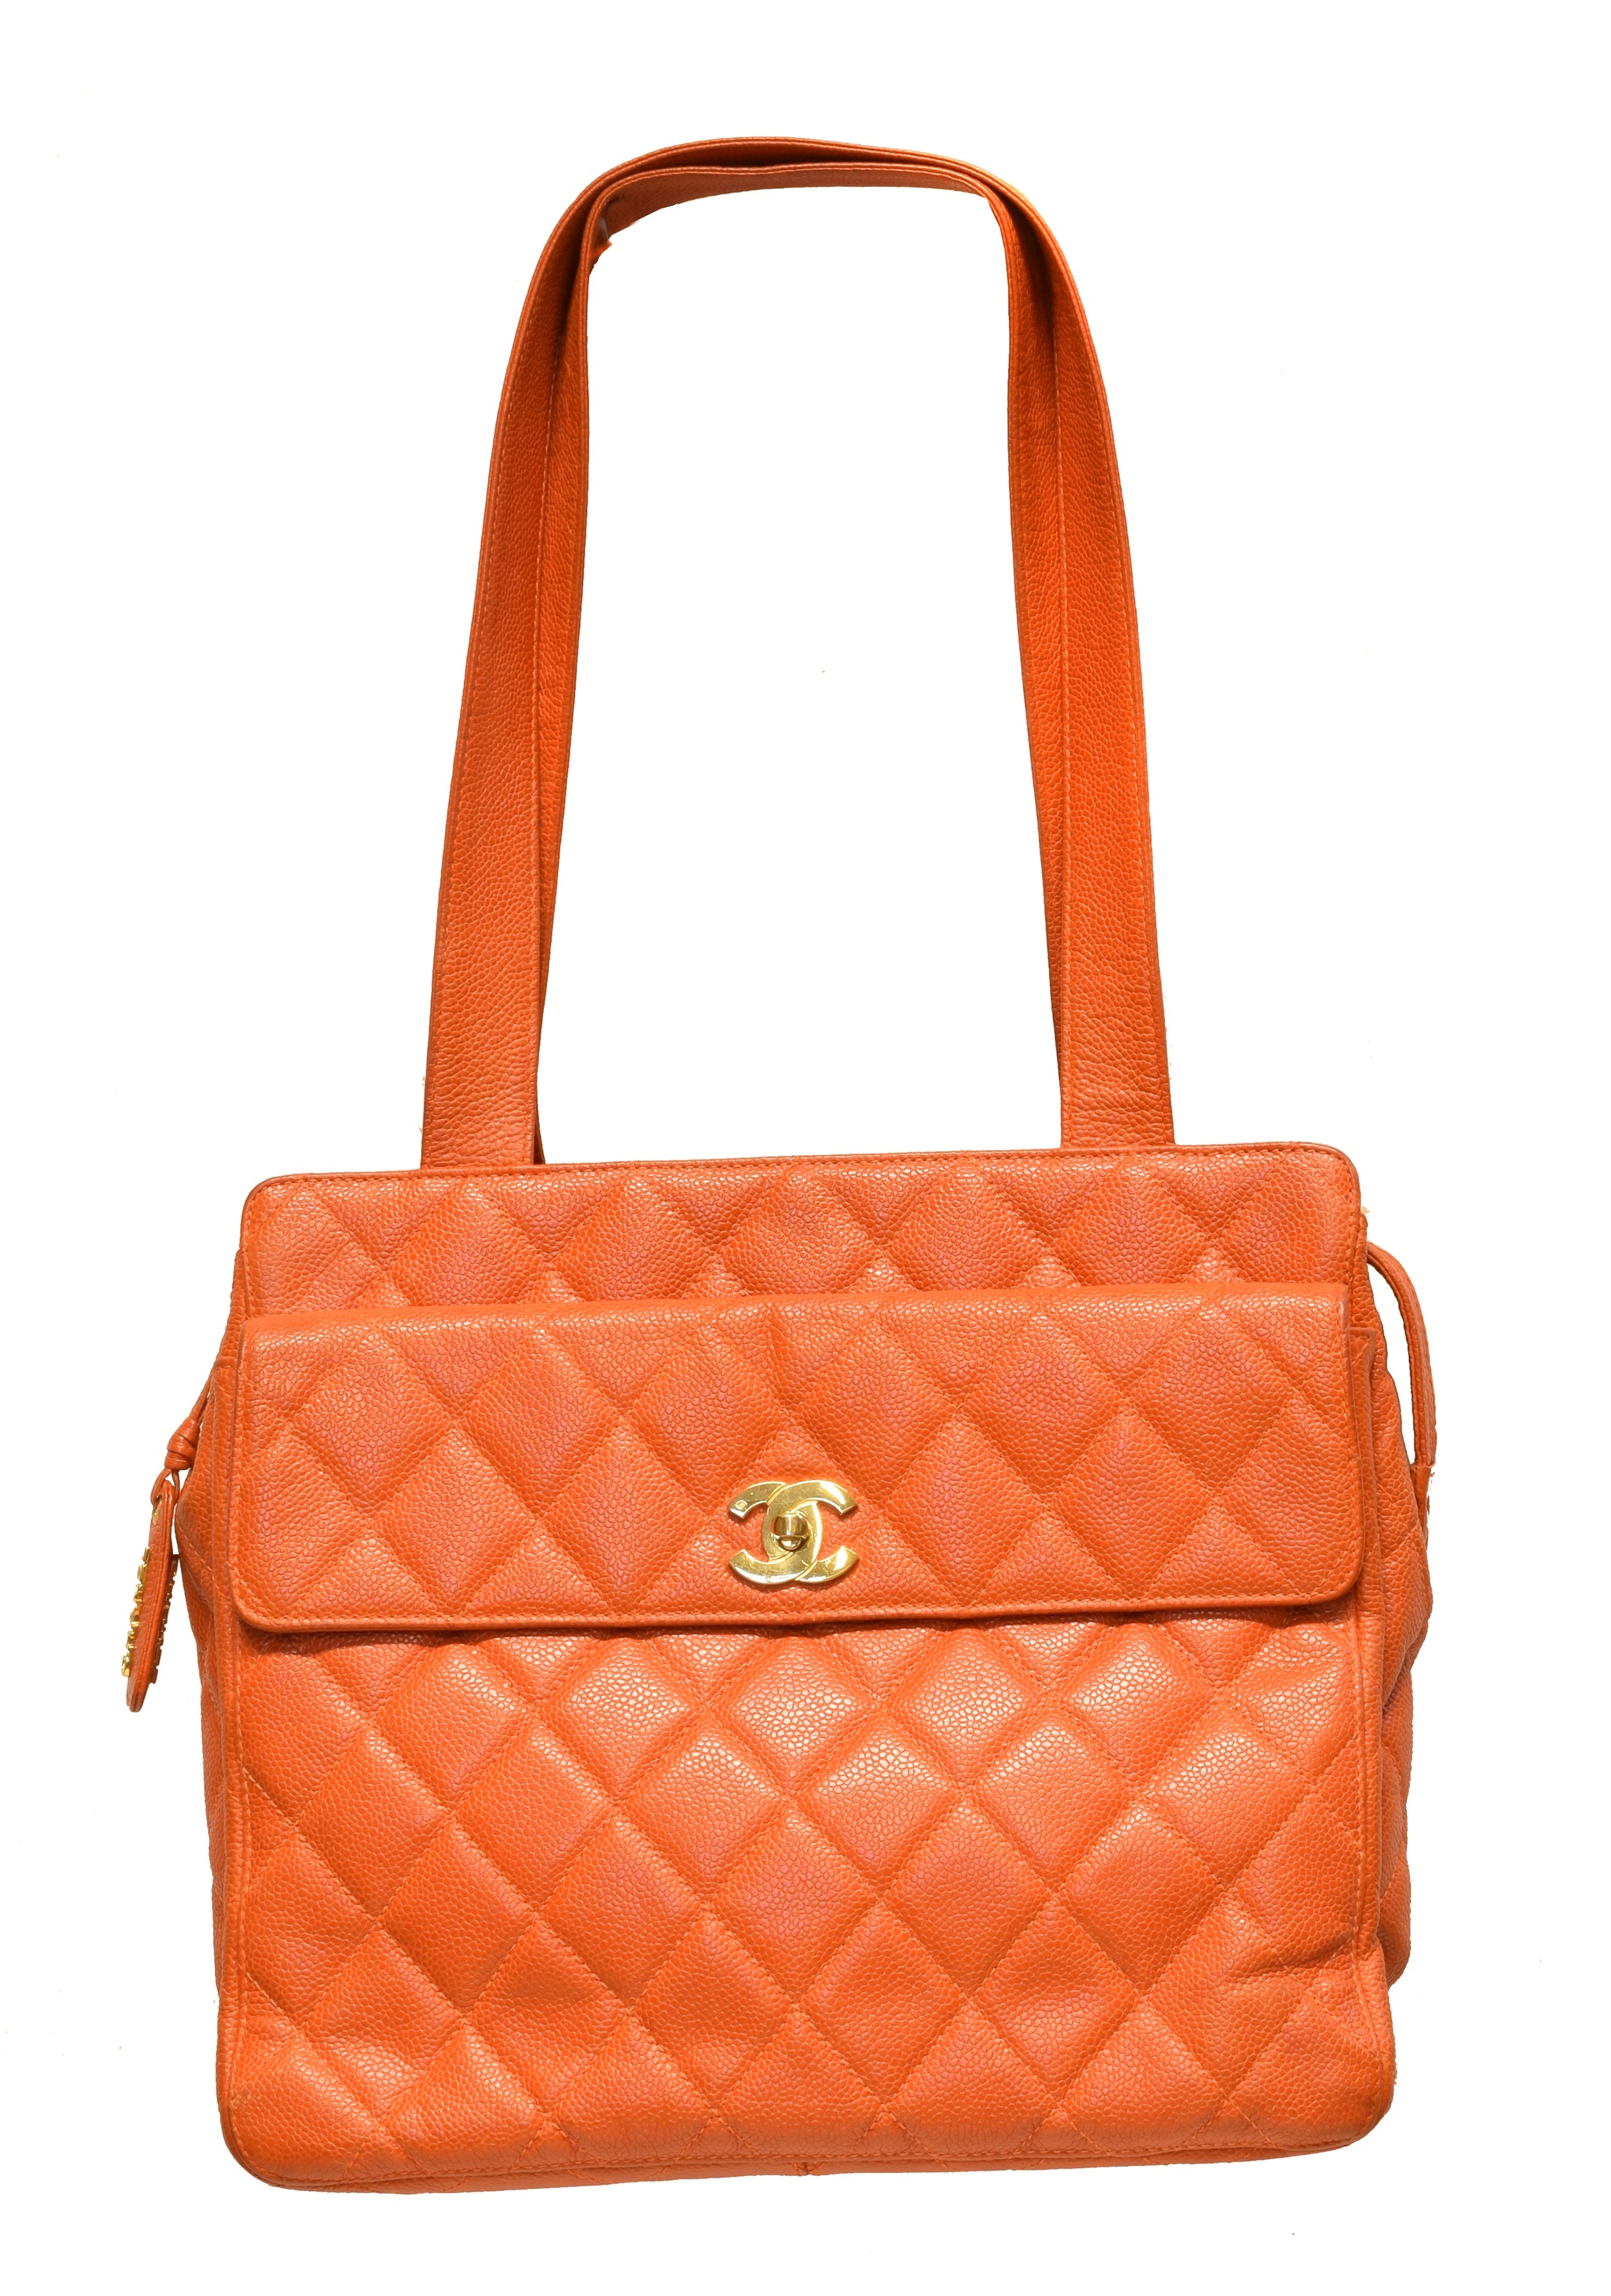 A Chanel Front Pocket Turnlock Tote Shoulder Bag, circa 1996-7, the orange quilted caviar calf leather exterior with orange leather strap and gold tone hardware, serial no. 4112158. With maker's authenticity card.  (Qty: 1)  30x25x10cm  Sold for £1,049